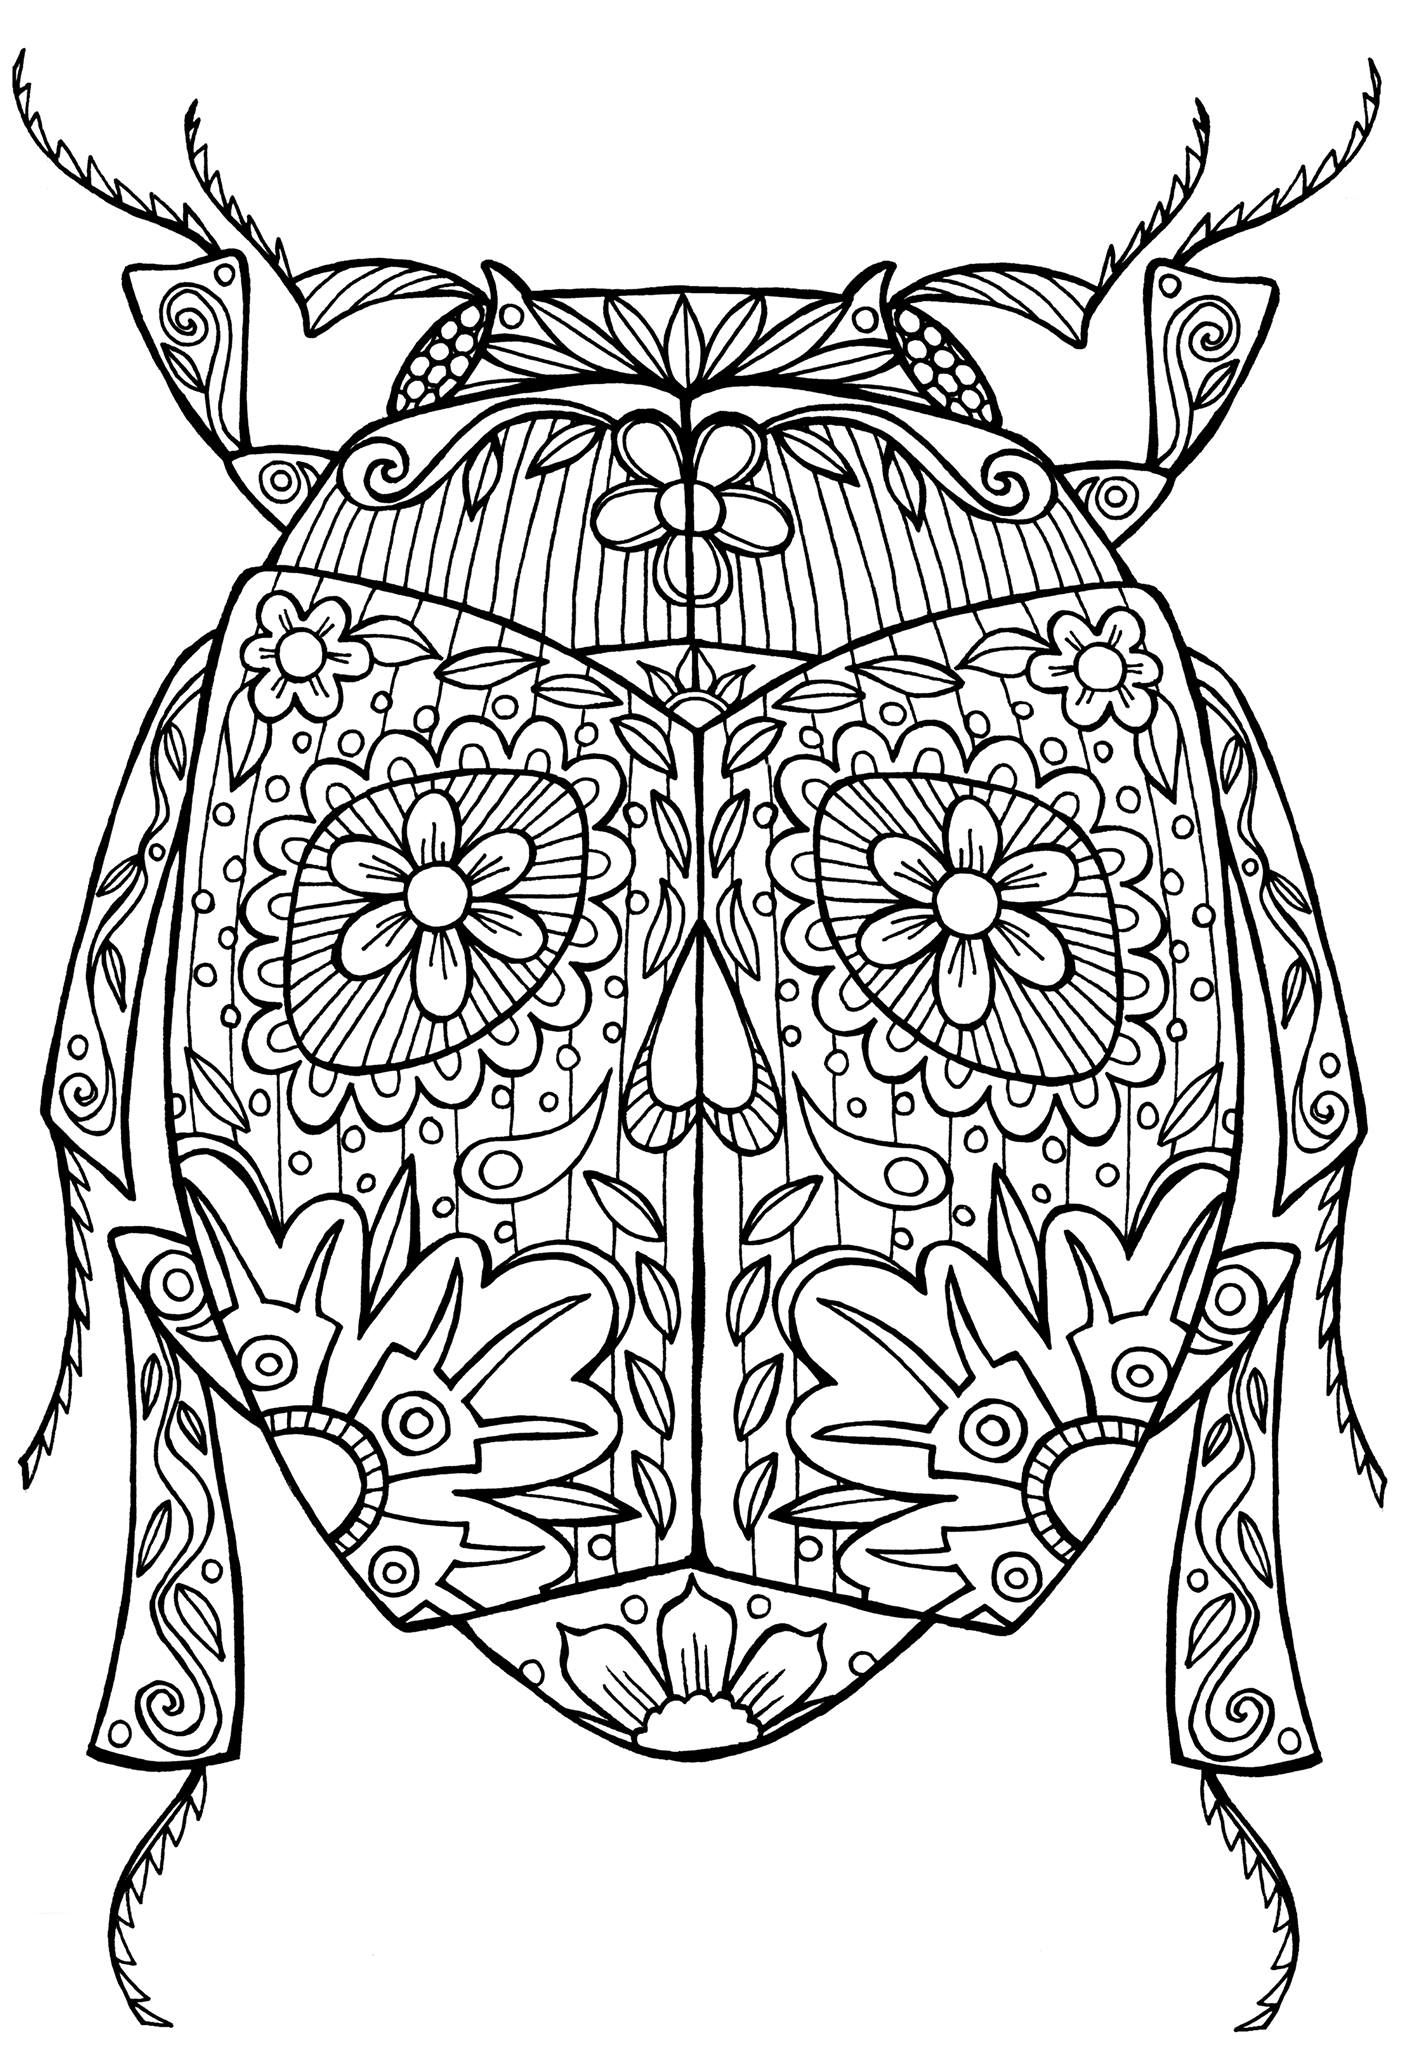 Free printable zentangle coloring pages for adults - Beetle Bug Abstract Doodle Zentangle Coloring Pages Colouring Adult Detailed Advanced Printable Kleuren Voor Volwassenen Coloriage